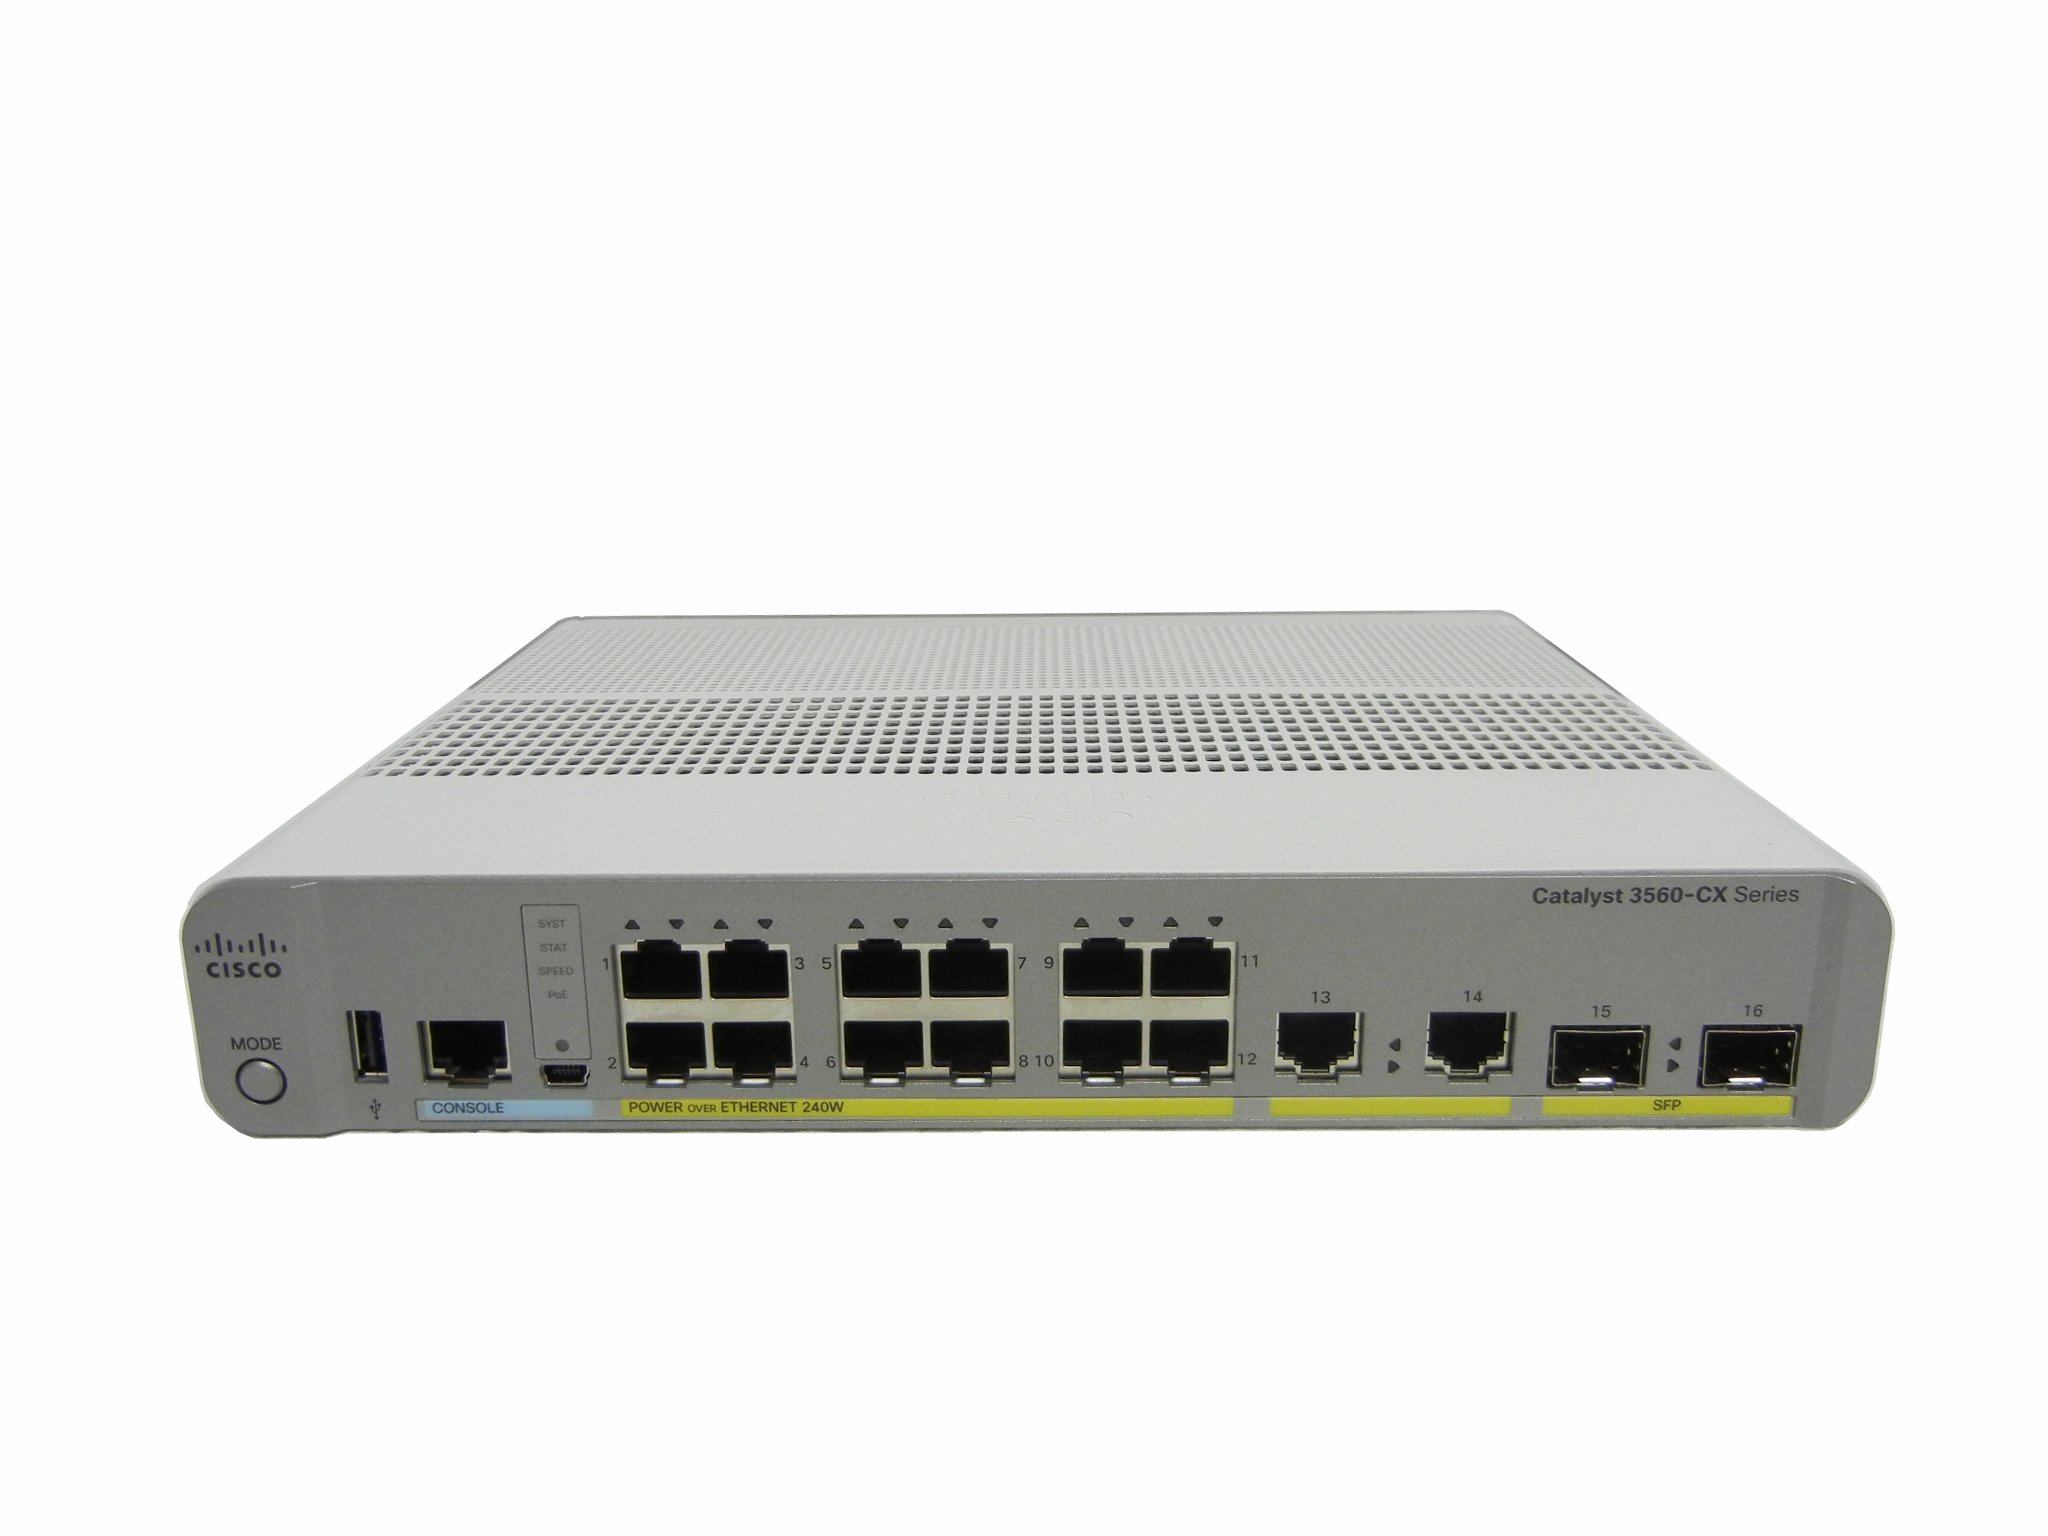 【中古】Cisco Catalyst 3560CX-12PC-S (WS-C3560CX-12PC-S)